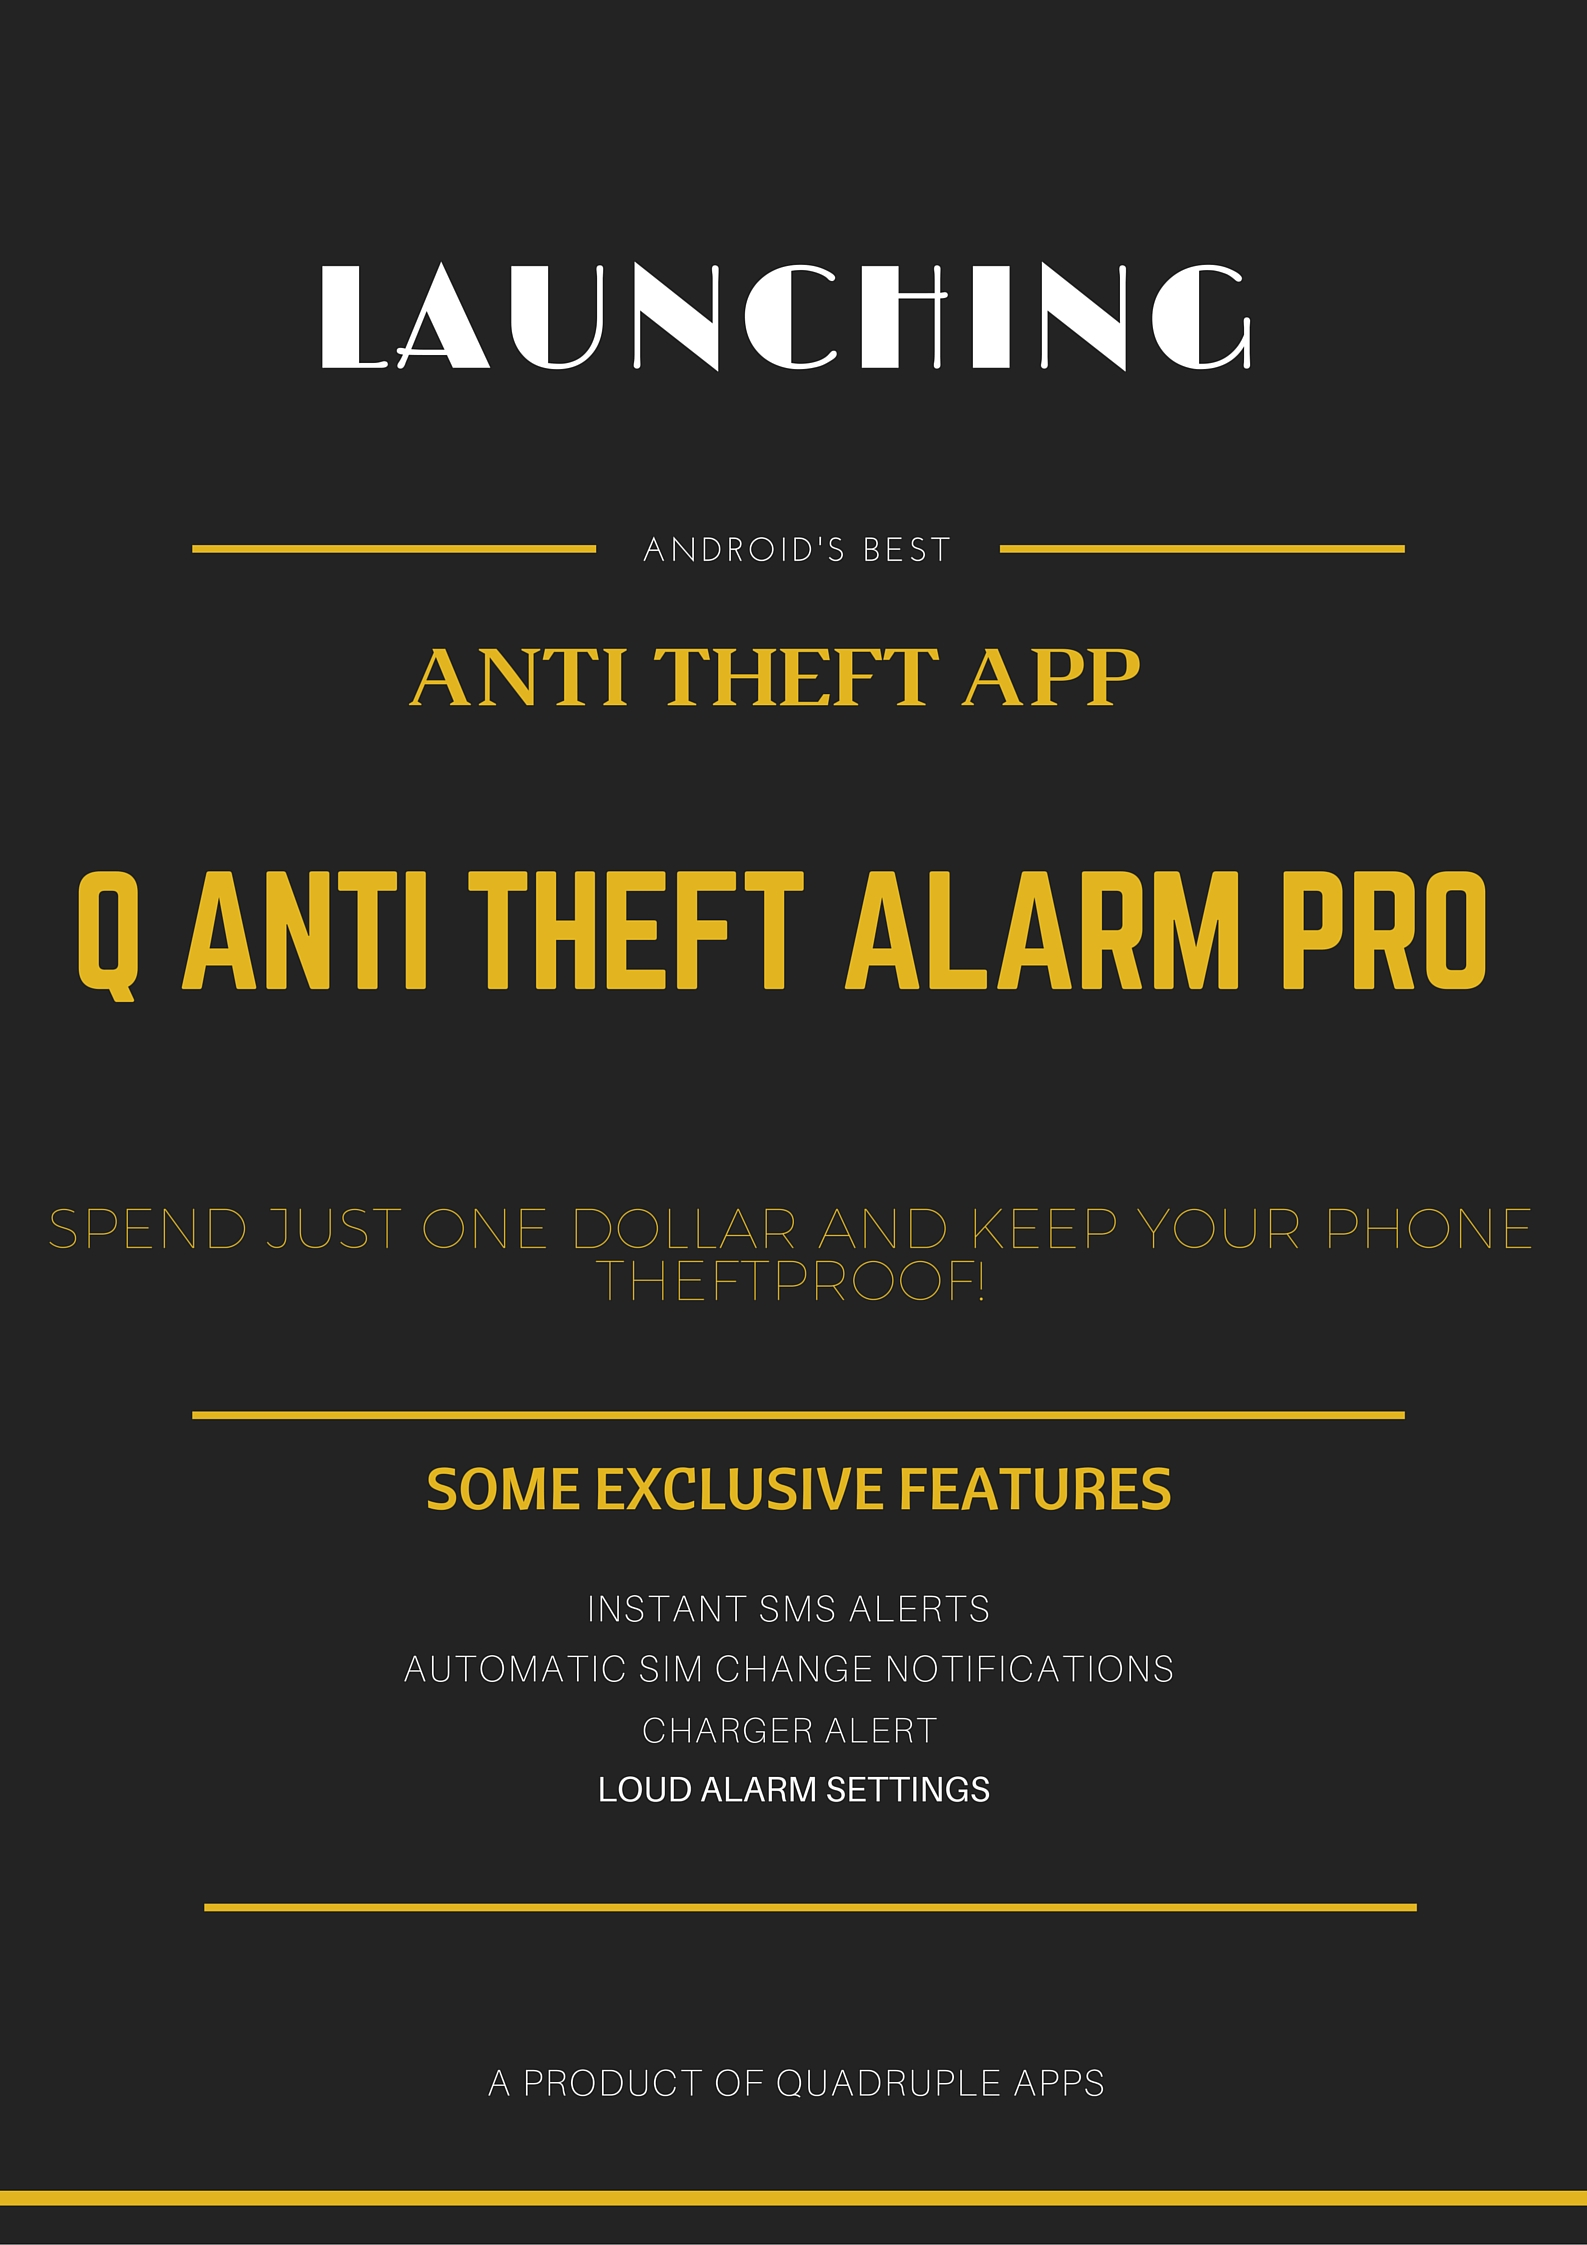 Q-Anit theft alarm Pro Mobile Application